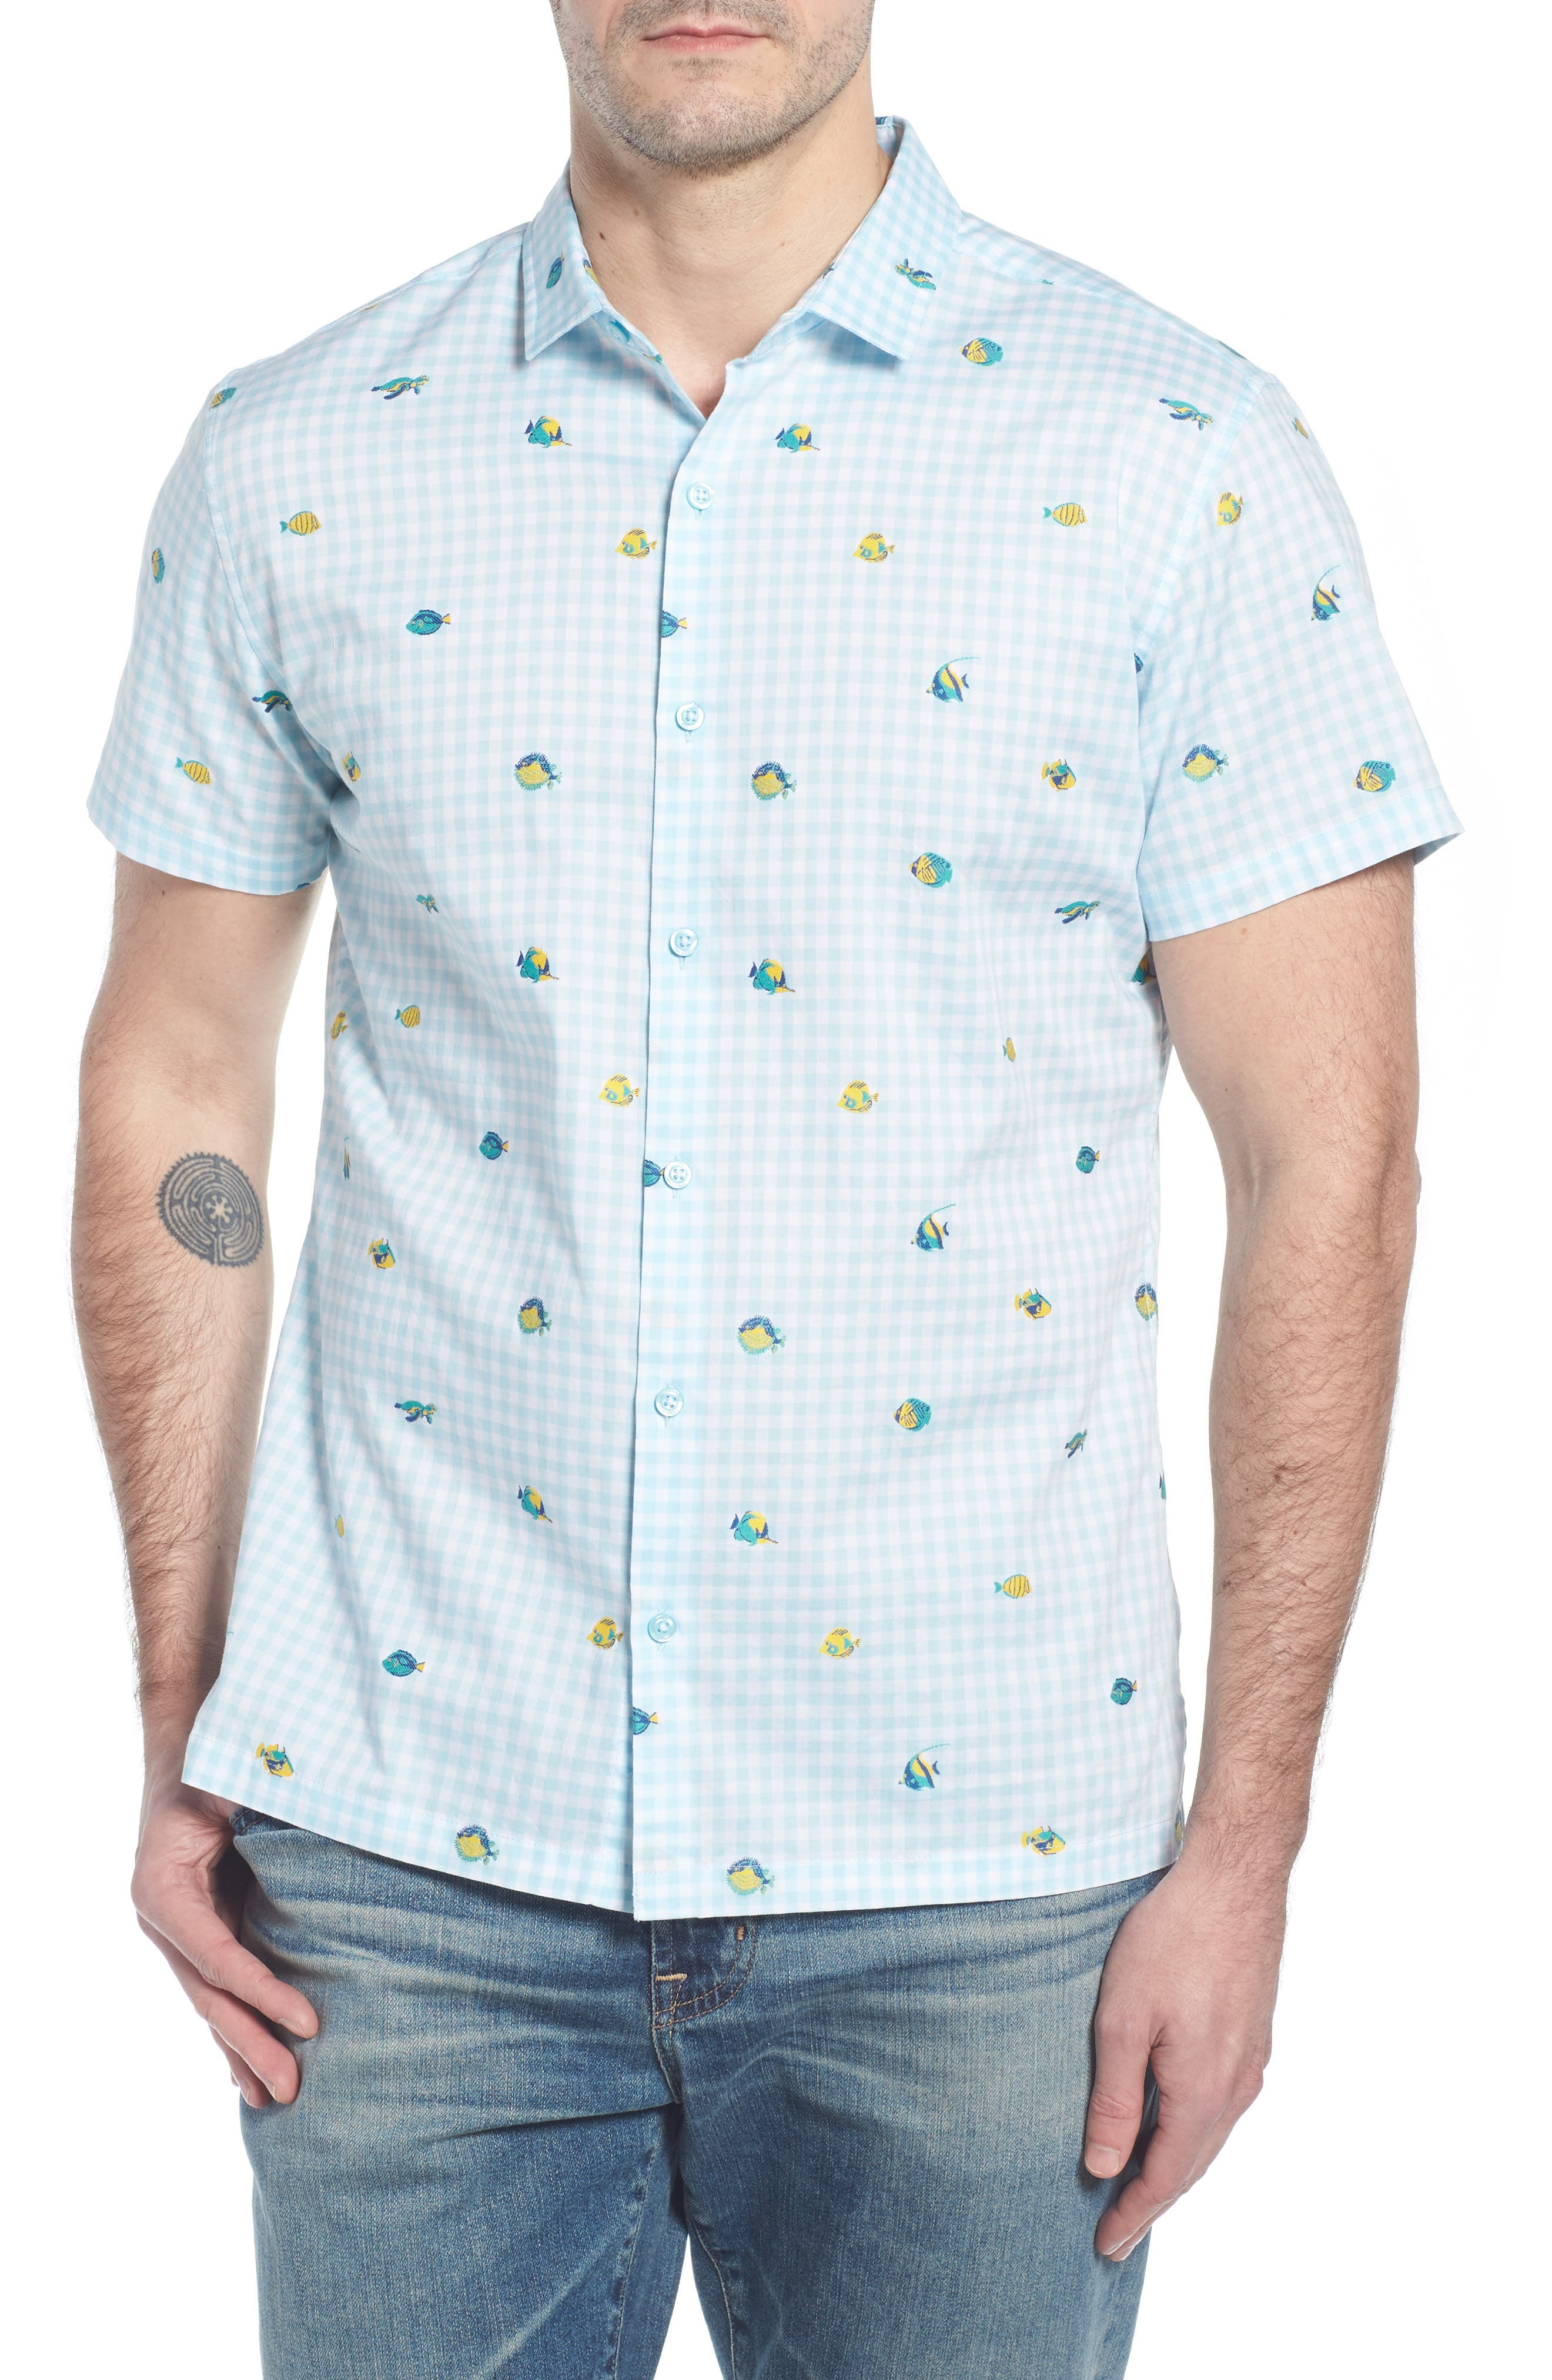 Picnic Reef Trim Fit Embroidered Camp Shirt,                         Main,                         color, SKY BLUE